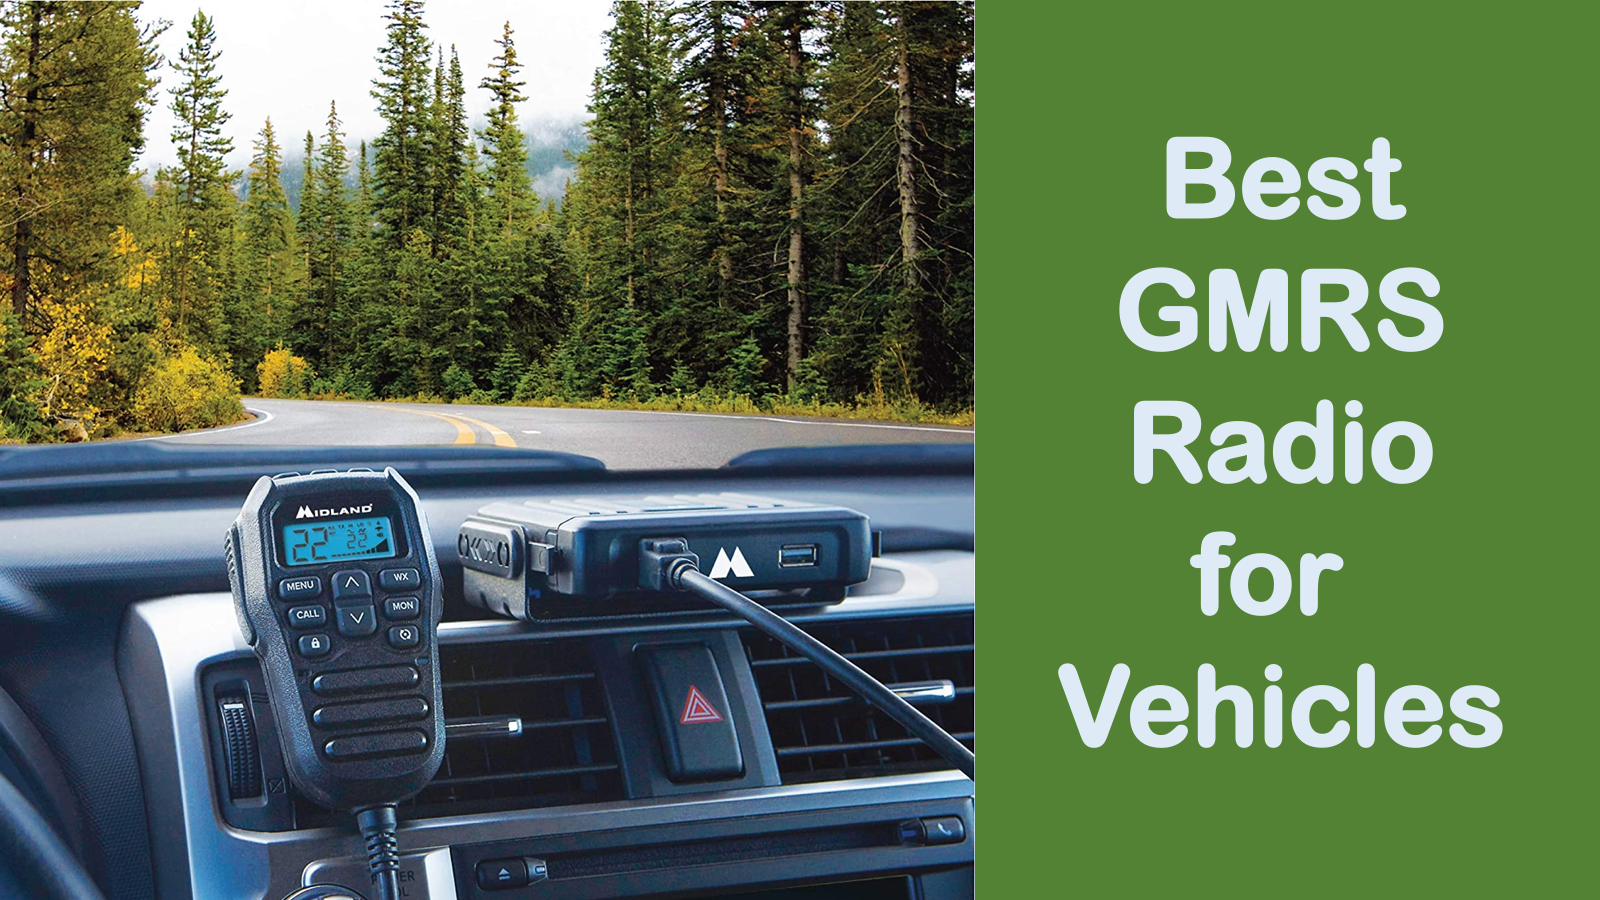 Best GMRS Radio for Vehicles